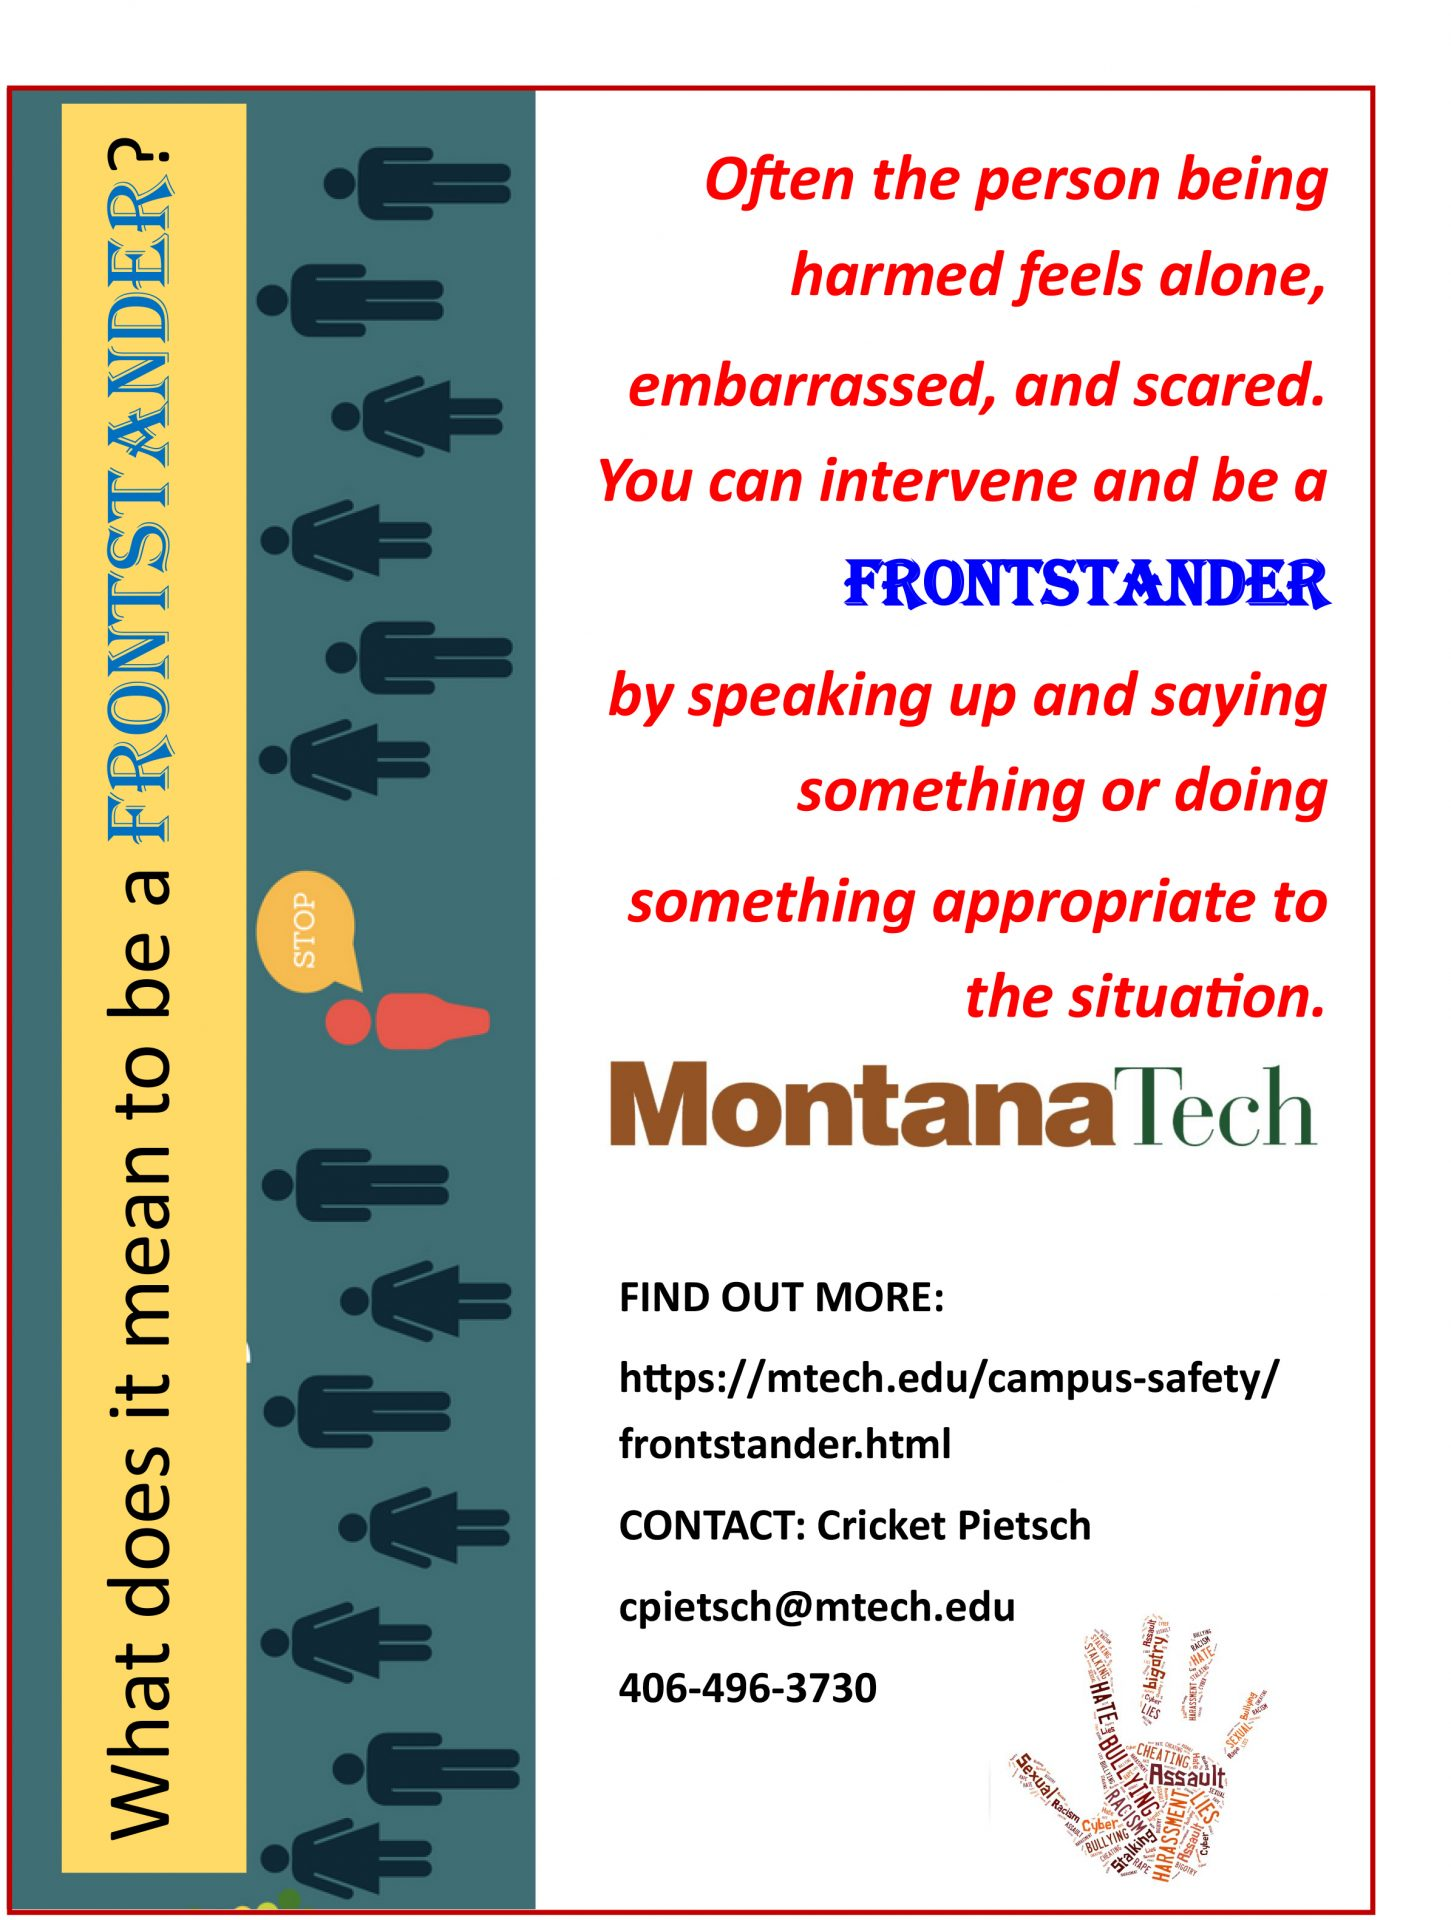 What Does it Mean to be a FRONTSTANDER?